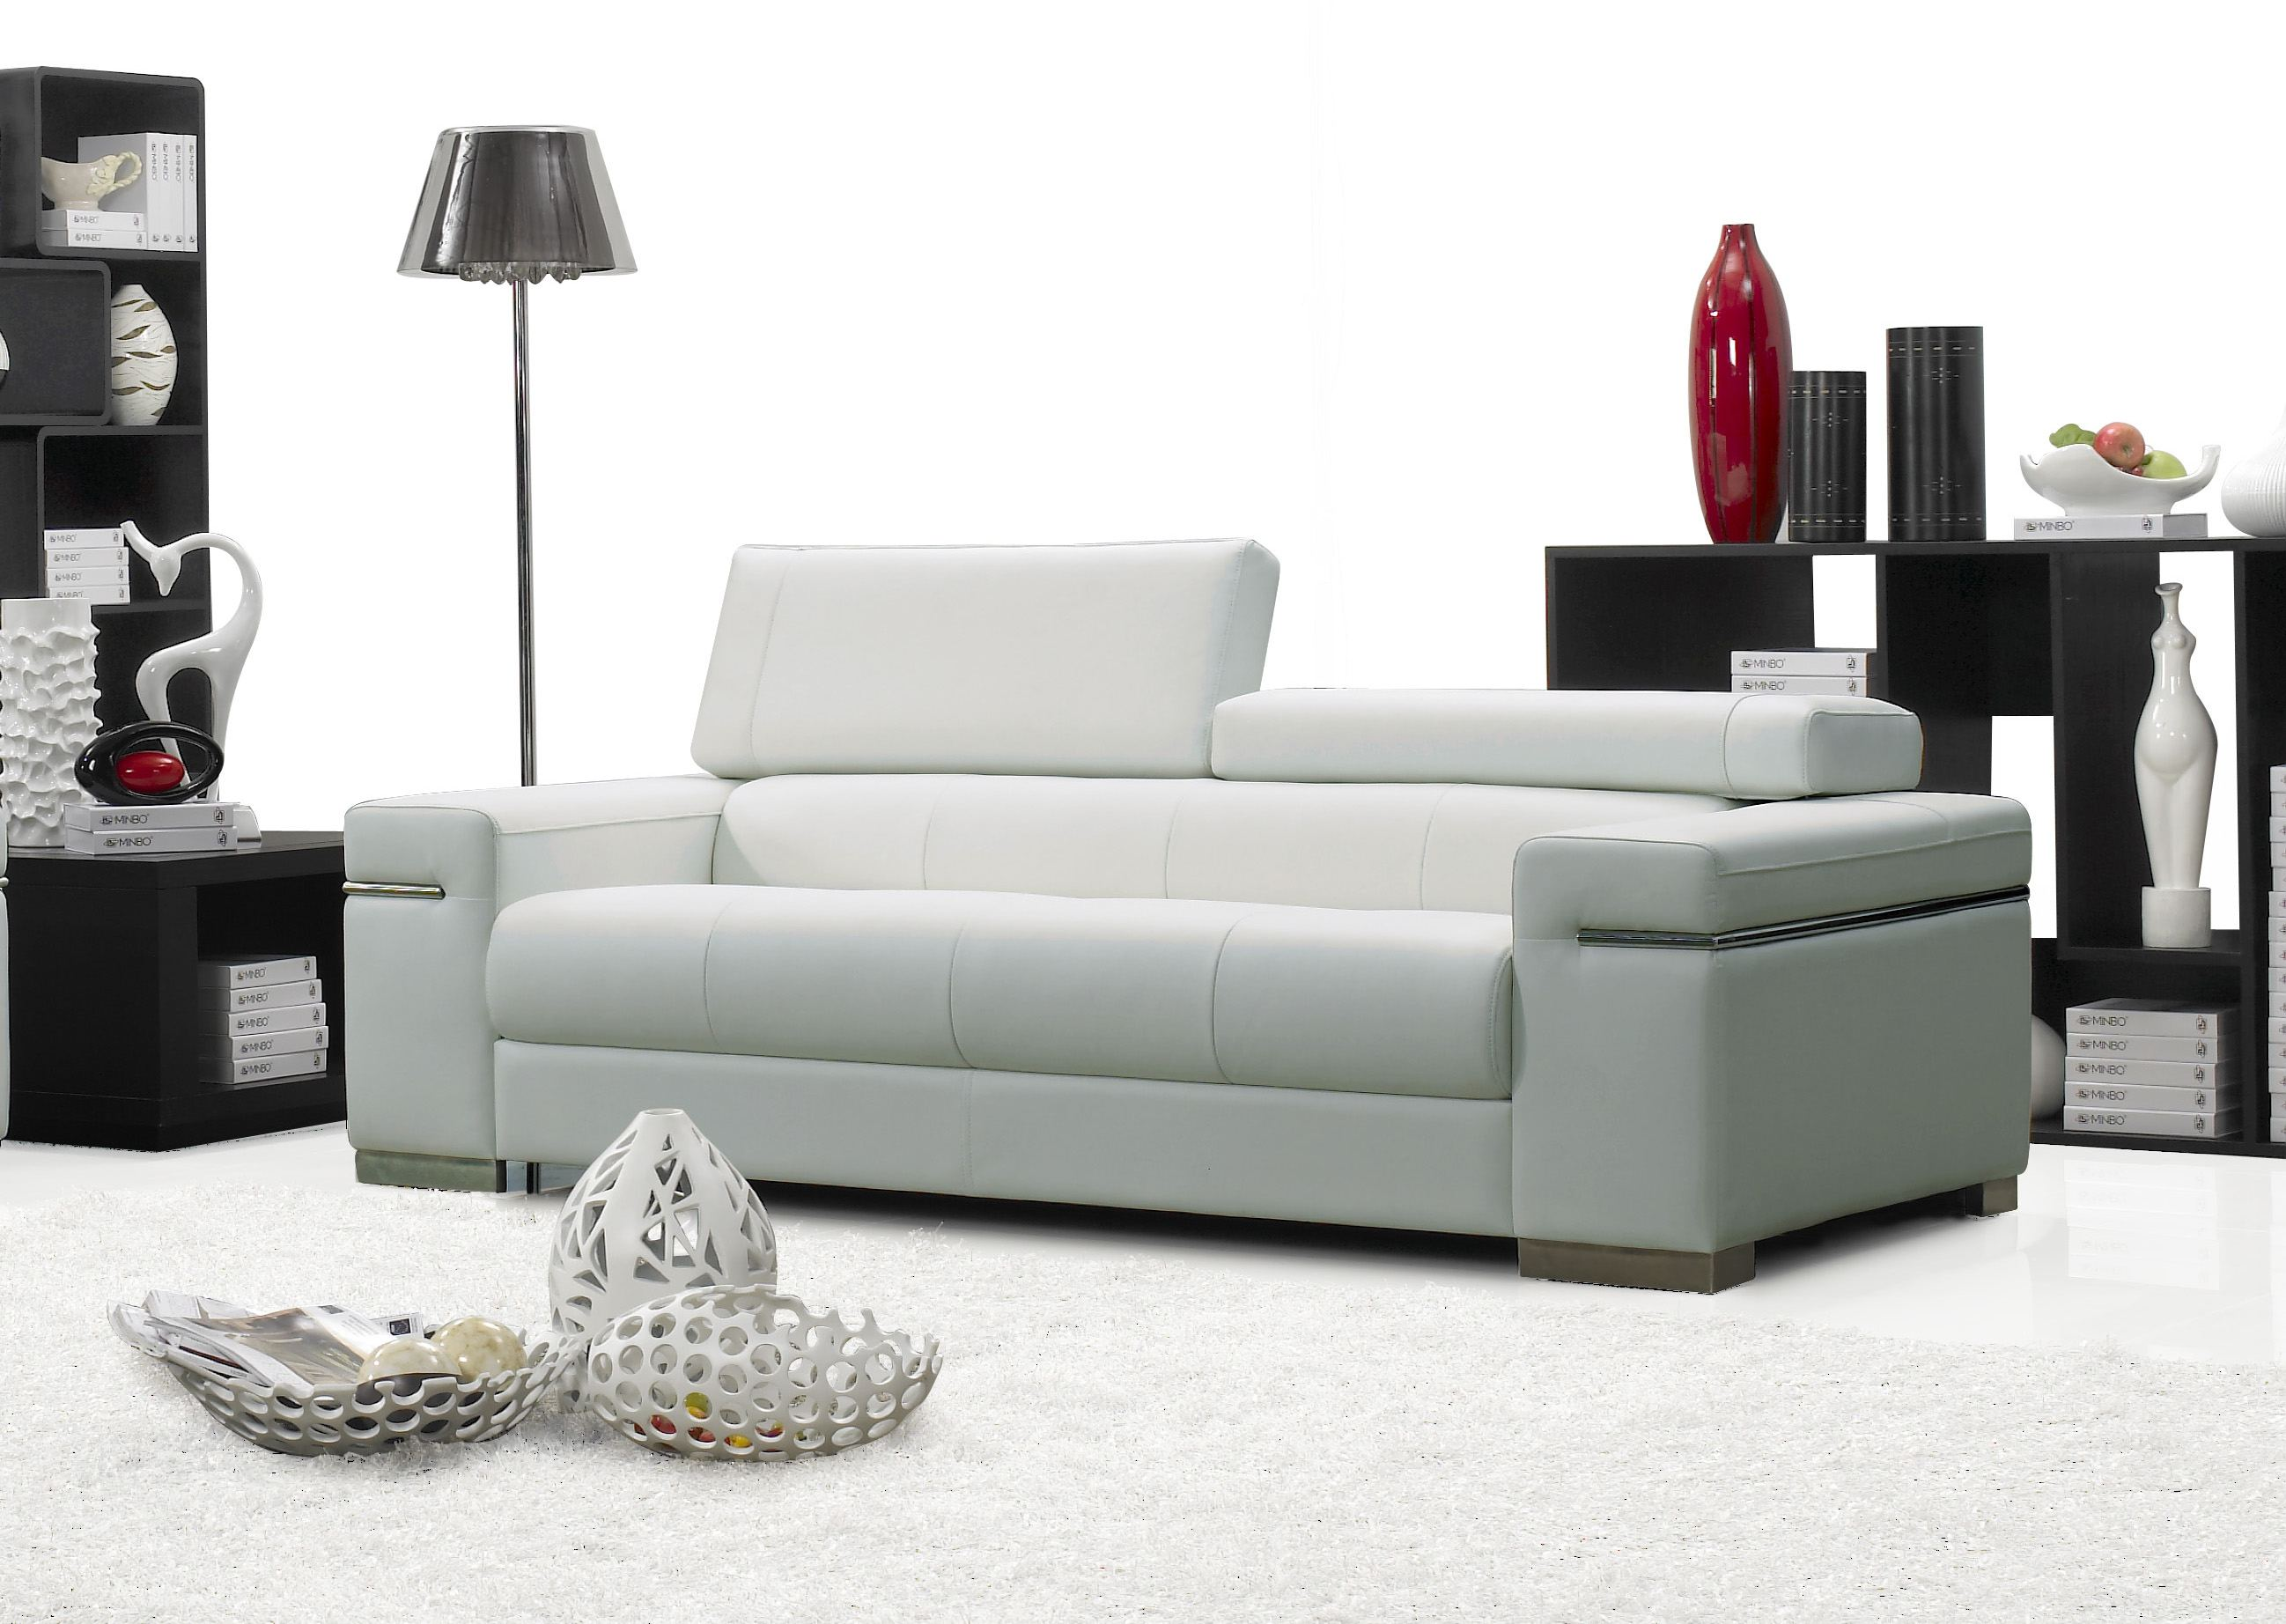 j m furniture soho leather sofa in white 17655111 s w. Black Bedroom Furniture Sets. Home Design Ideas